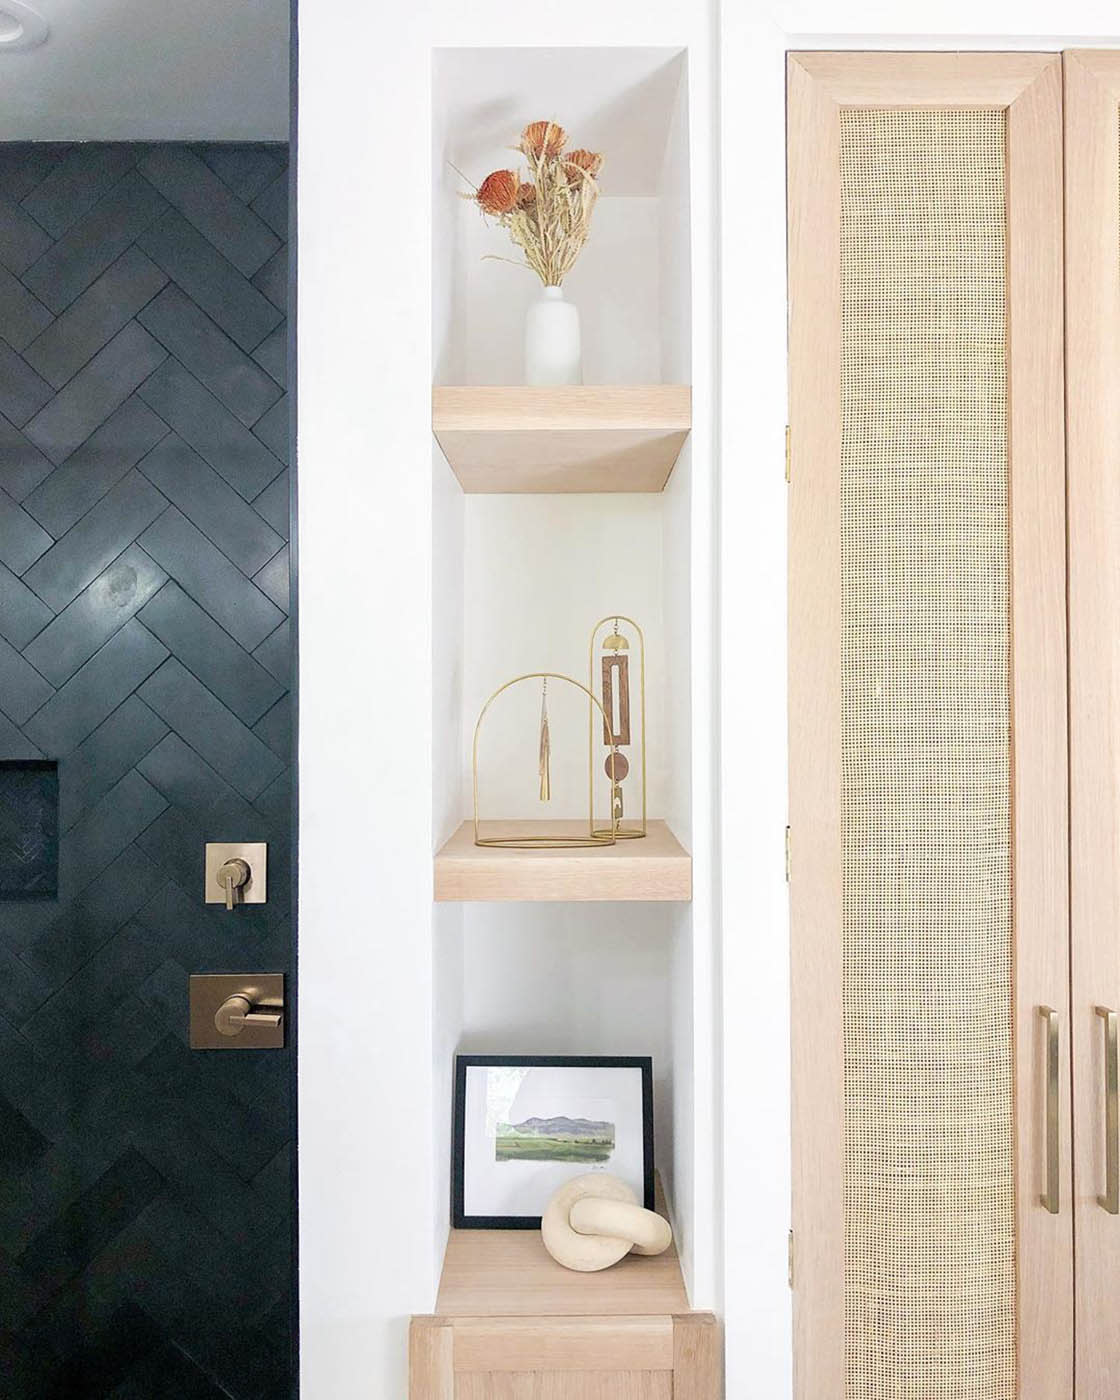 This bathroom remodel before and after has clever DIY projects hiding everywhere you look — including cane cabinets and more.